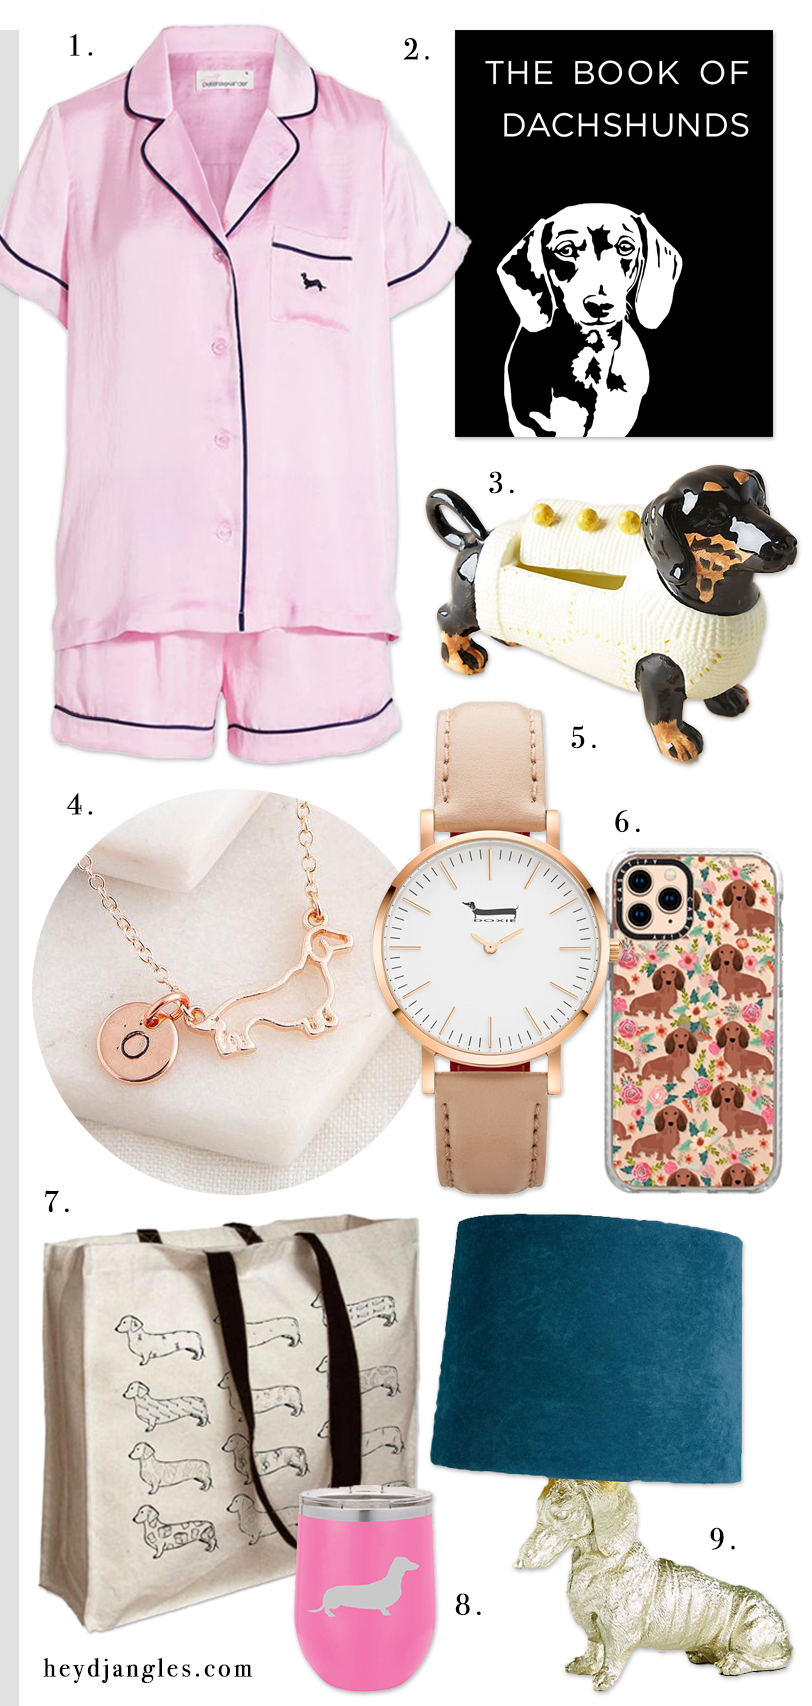 GIFT GUIDE: 9 STYLISH DACHSHUND GIFTS FOR HER – heydjangles.com – Gift guide for Dachshund lovers, Dachshund gift ideas, dog lover gift guide, Doxie fans.